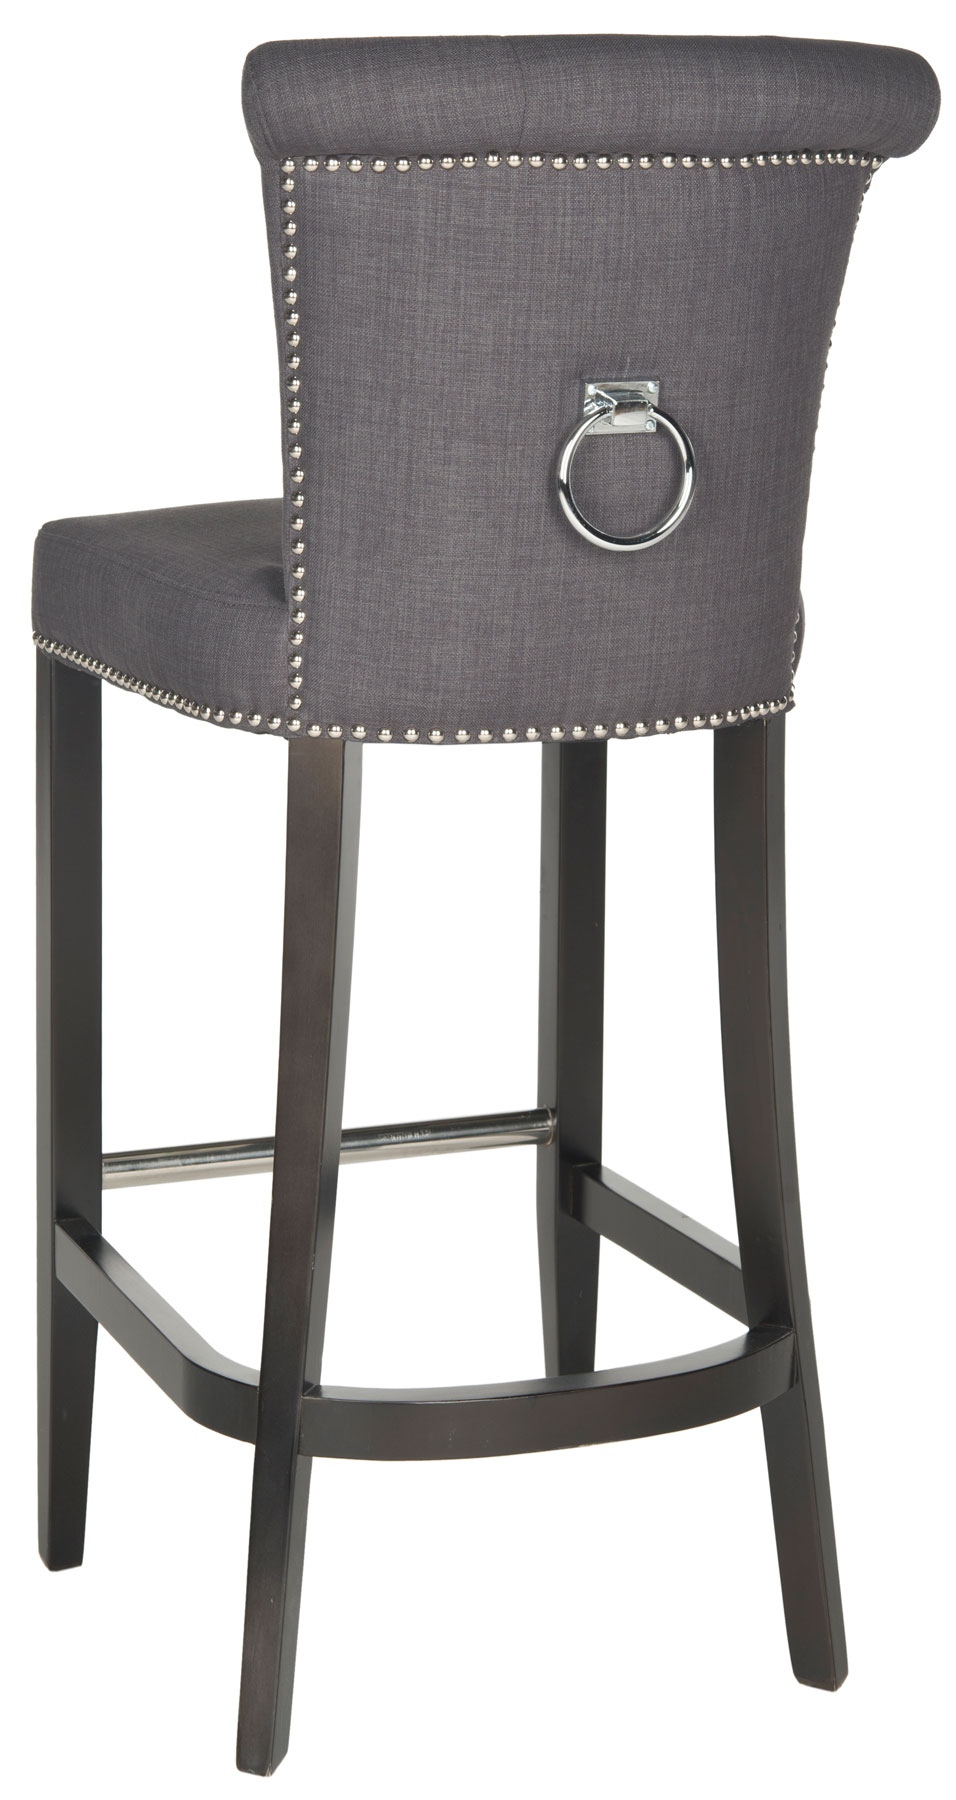 HUD8242A Bar Stools Furniture by Safavieh : hud8242a back from safavieh.com size 956 x 1800 jpeg 177kB